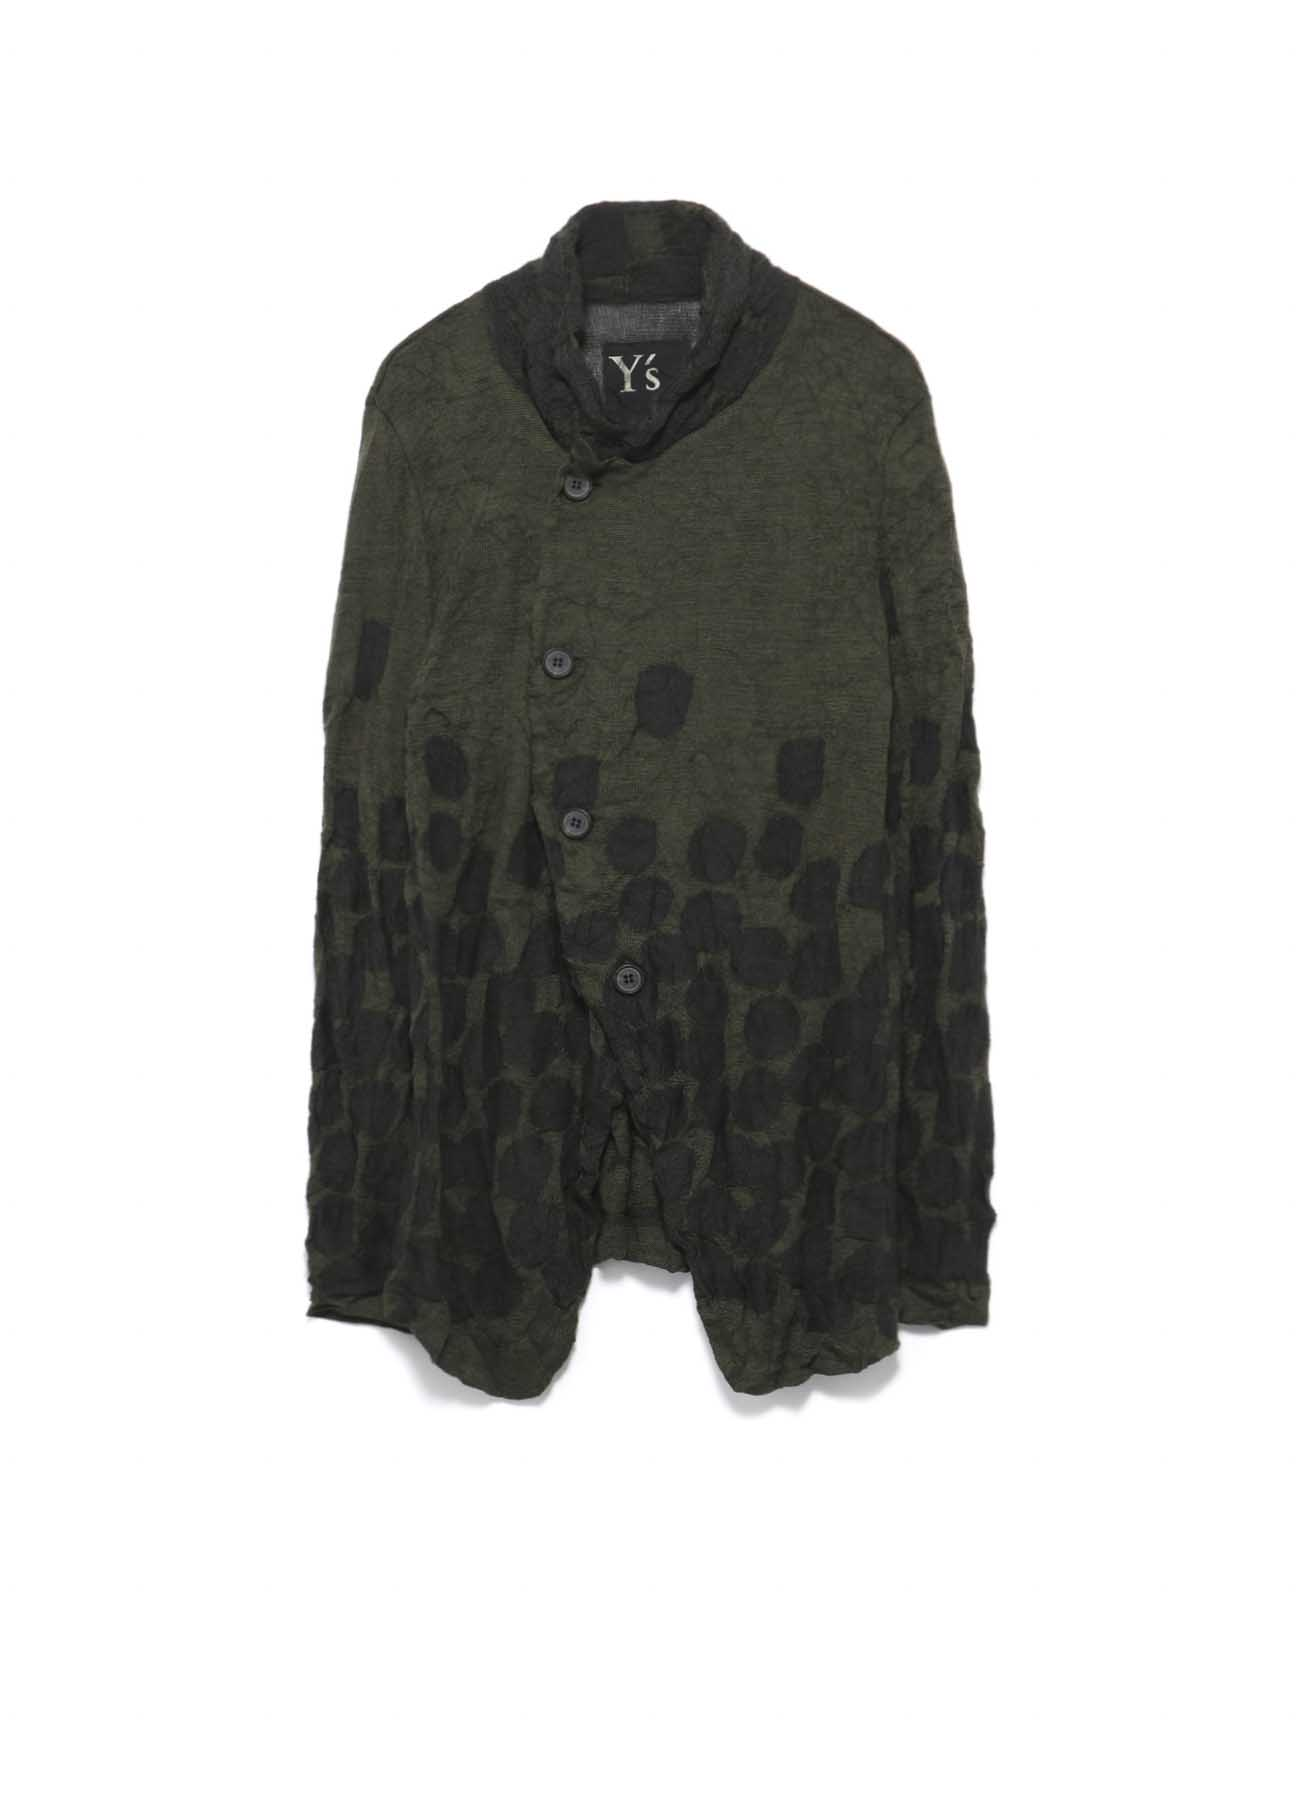 LINKS DOT WRINKLE 4 BOTANN KNIT JACKET